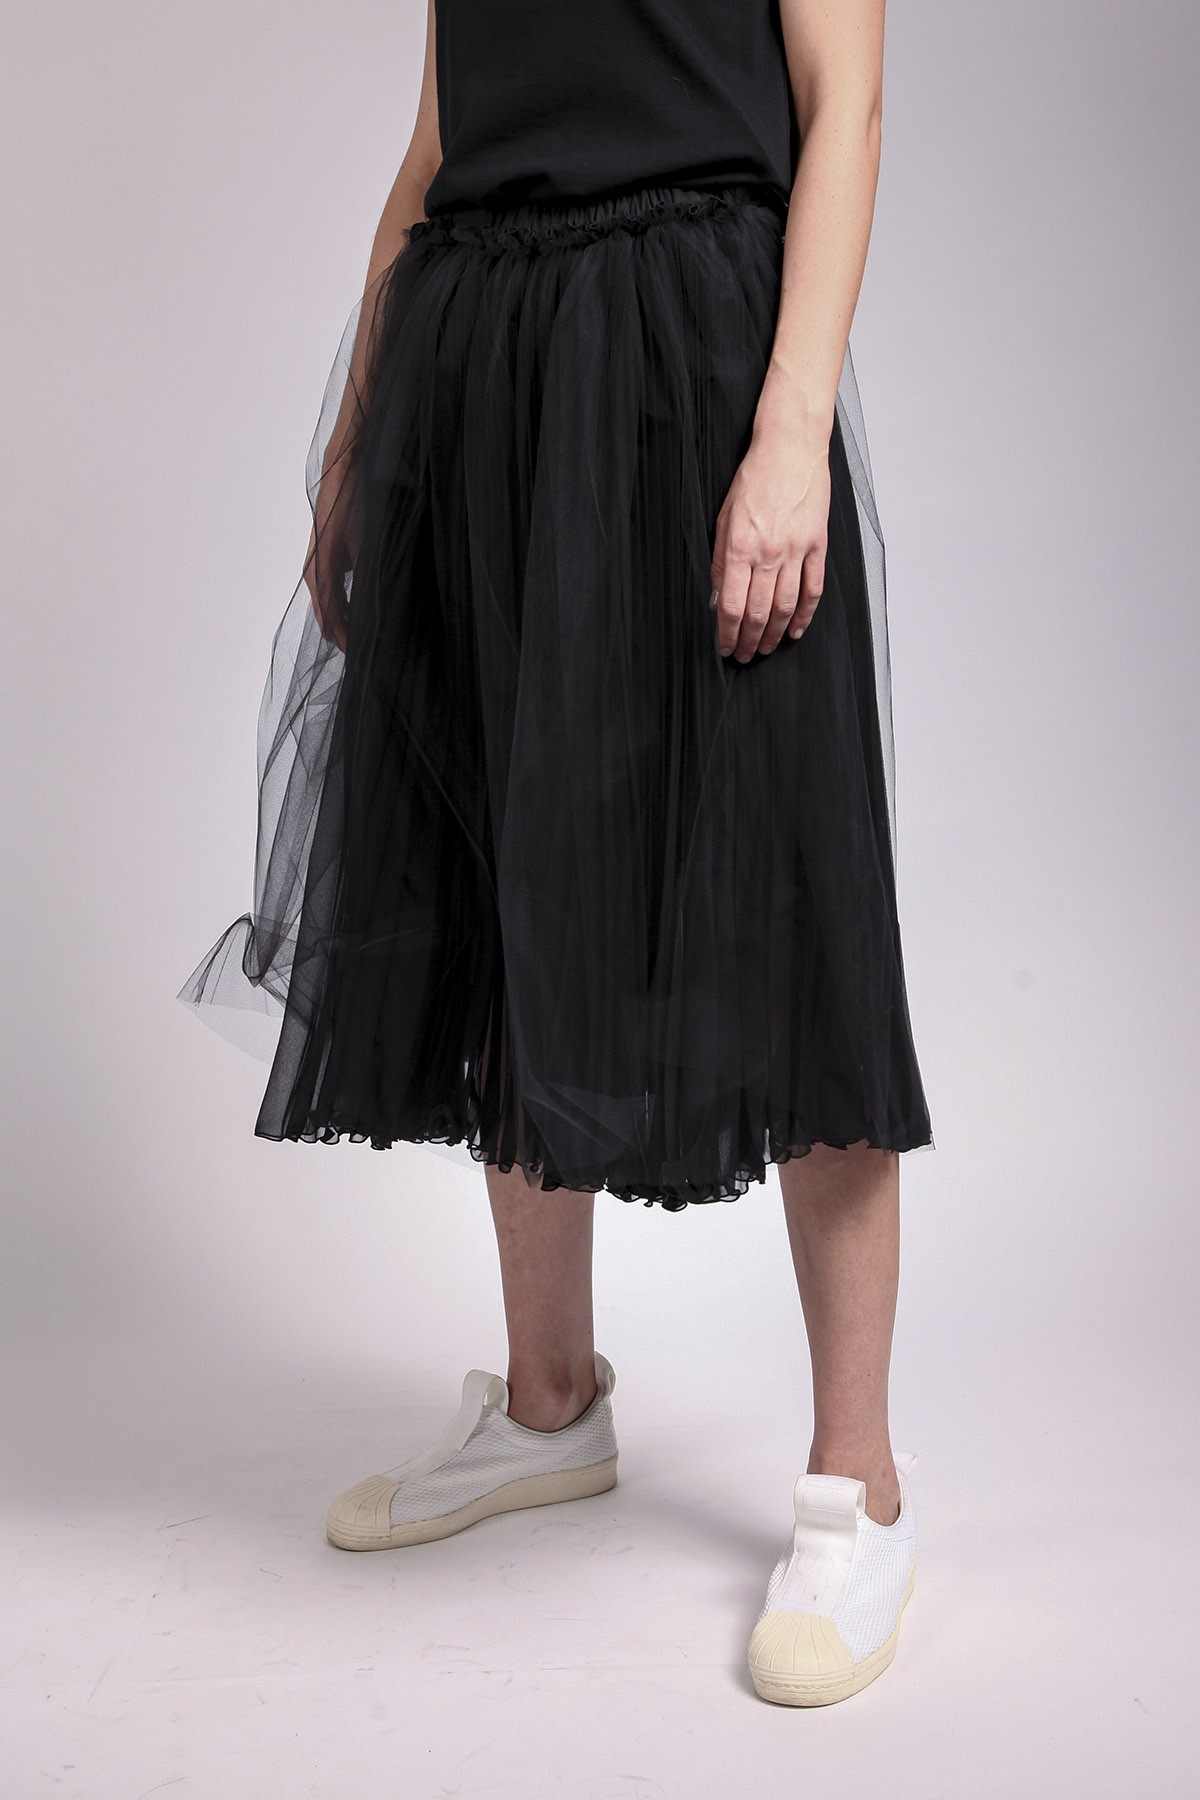 COMME DES GARÇONS TRICOT - COMME DES GARÇONS TRICOT BLACK SKIRT WITH TULLE